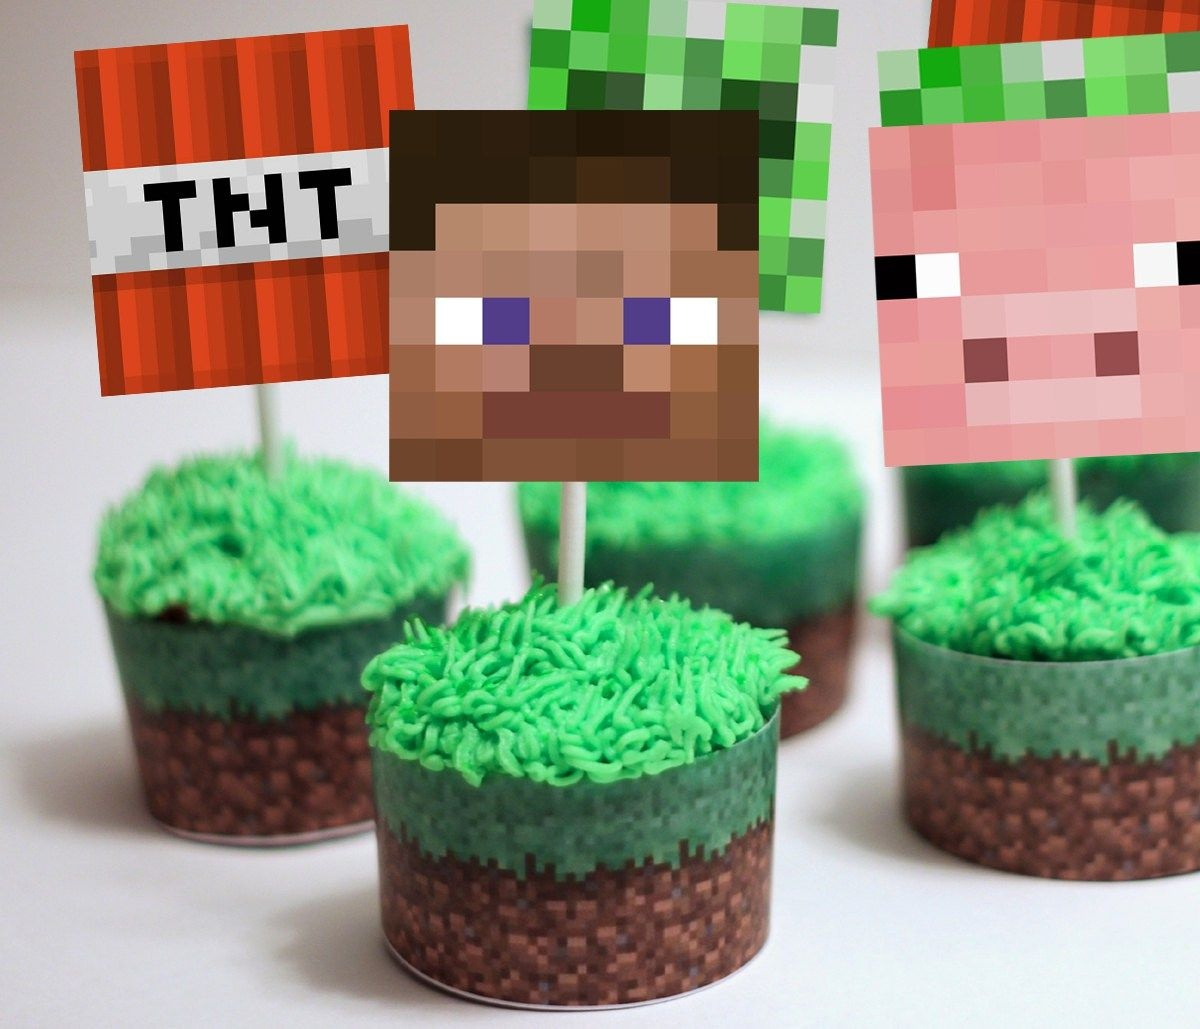 Minecraft Cupcake Toppers & Wrappers   Partyparty   Minecraft - Free Printable Minecraft Cupcake Toppers And Wrappers